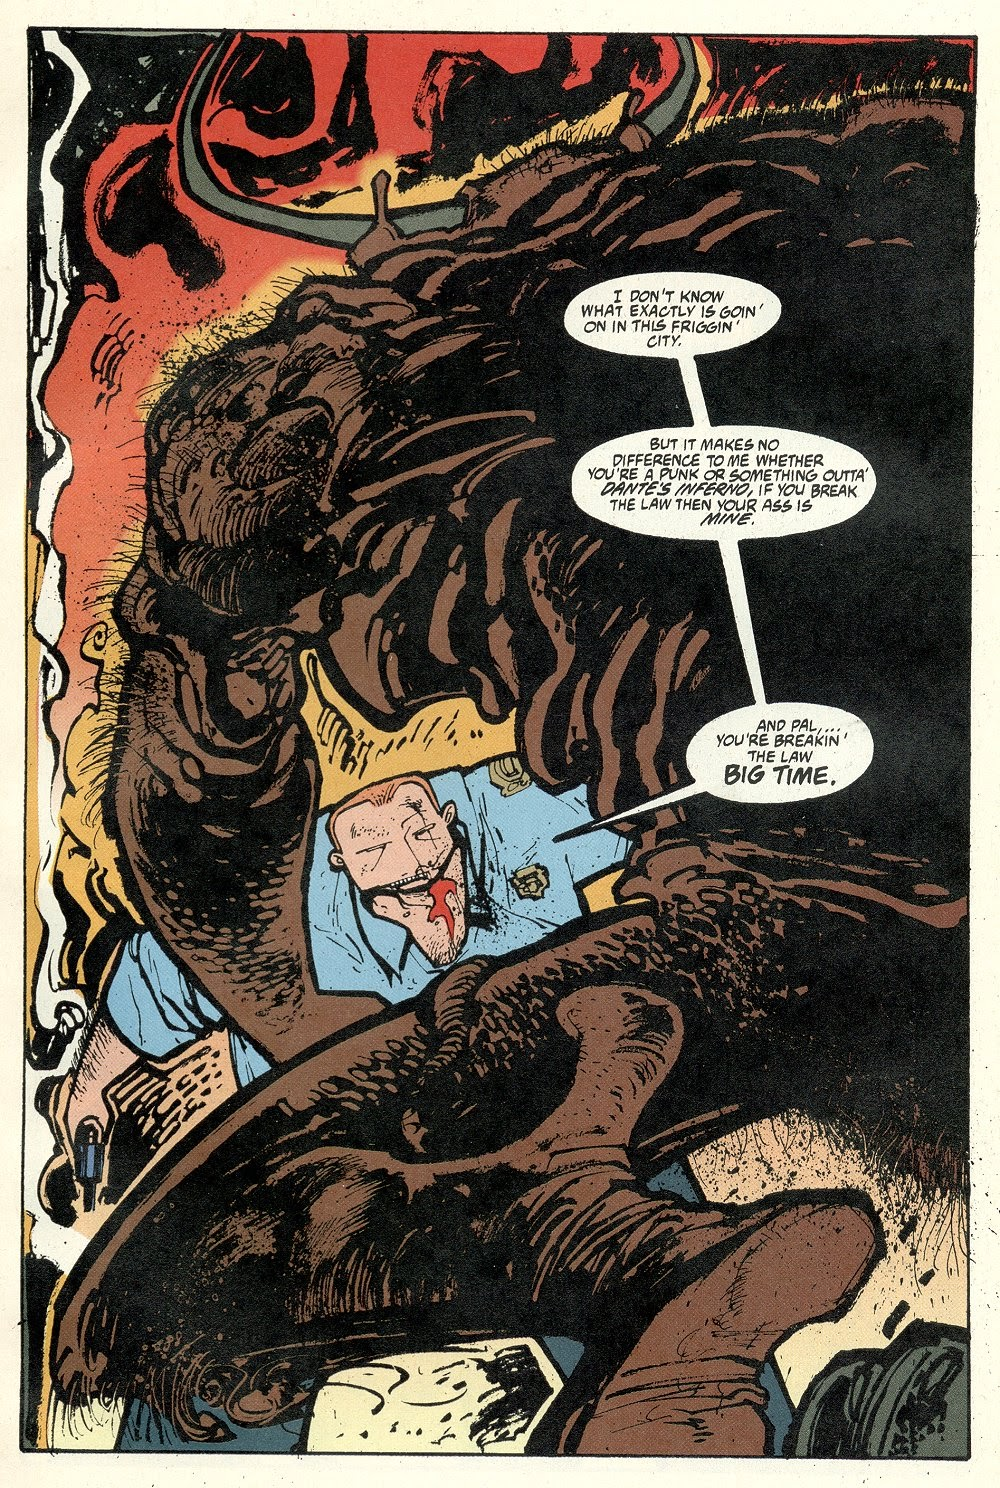 Read online Ted McKeever's Metropol comic -  Issue #11 - 3